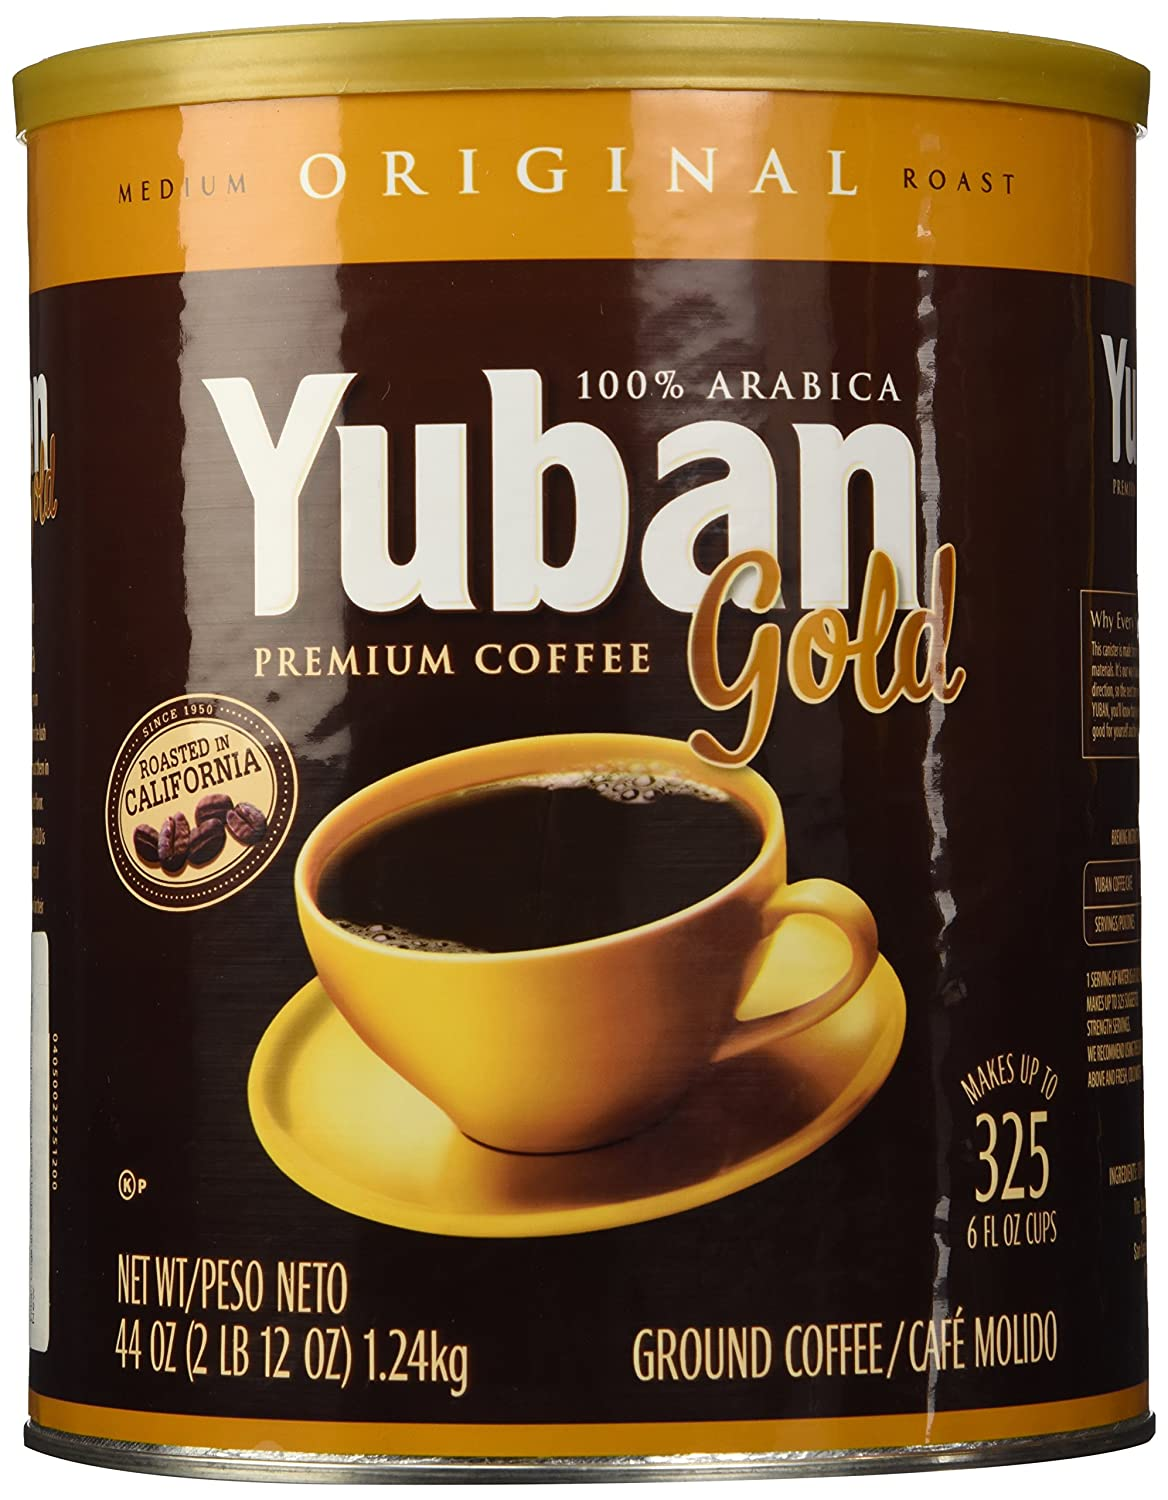 Yuban Original Medium Roast Premium Ground Coffee